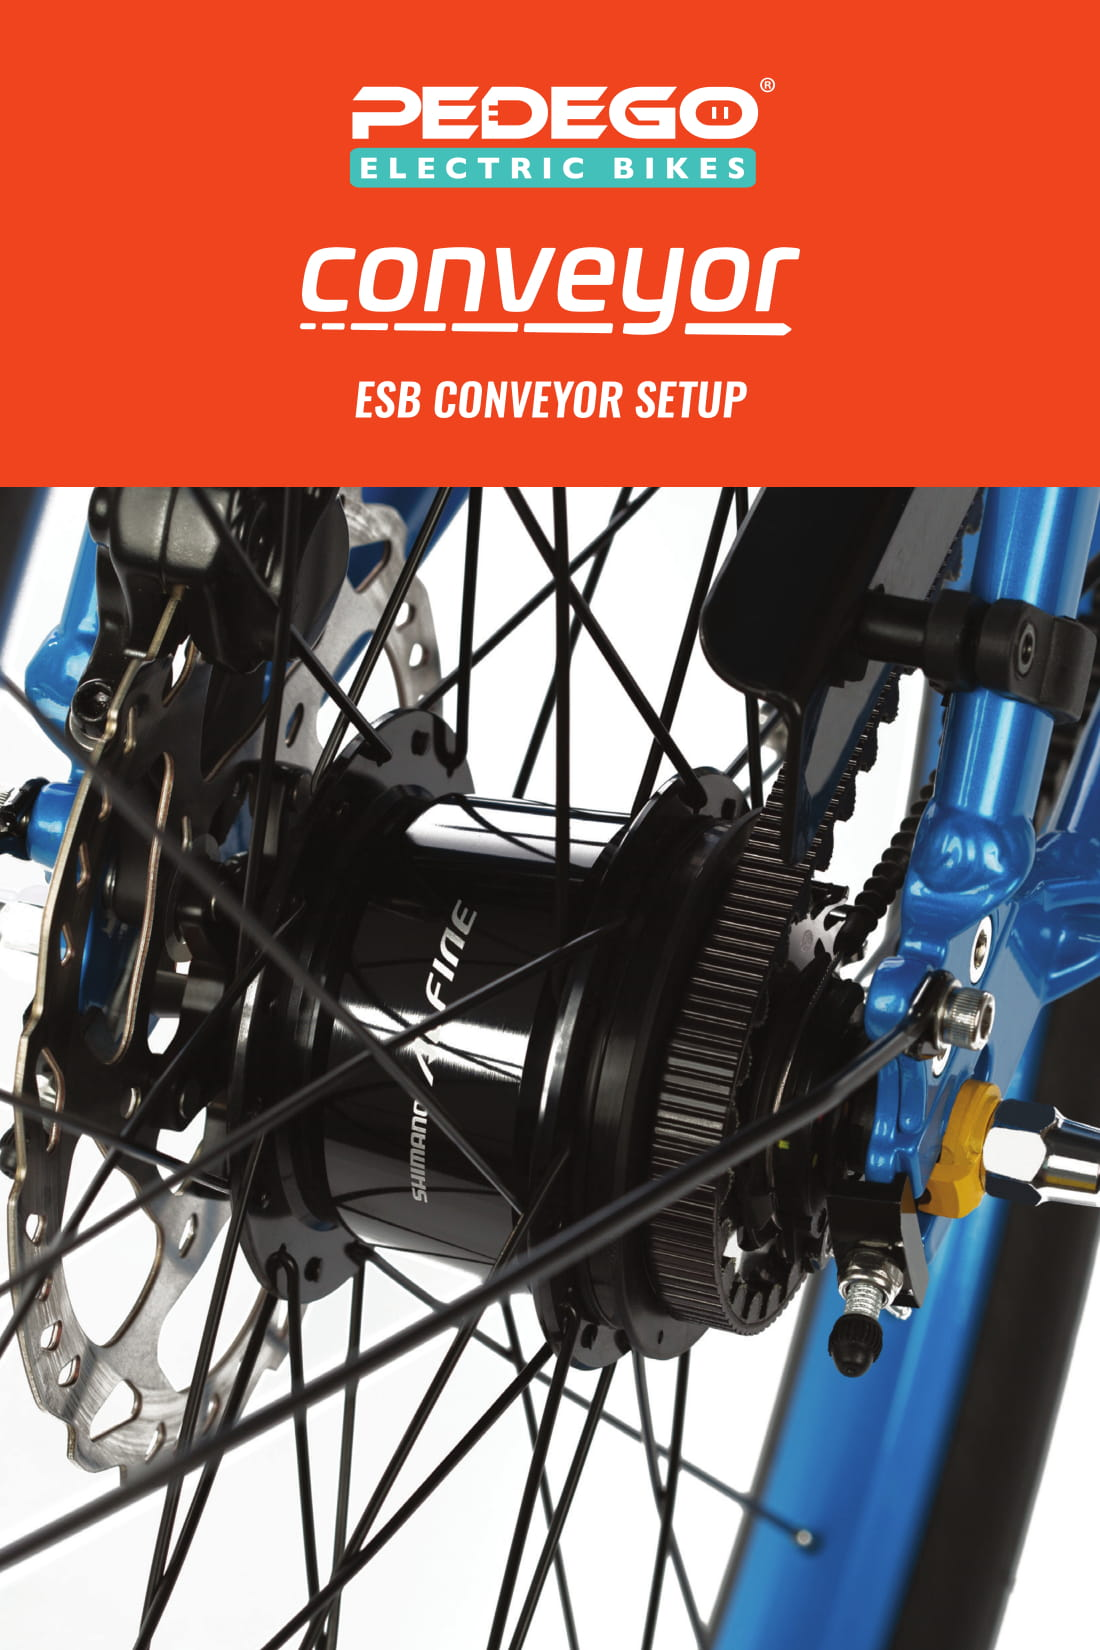 Pedego_ESB_Conveyor_Setup_Manual-01.jpg